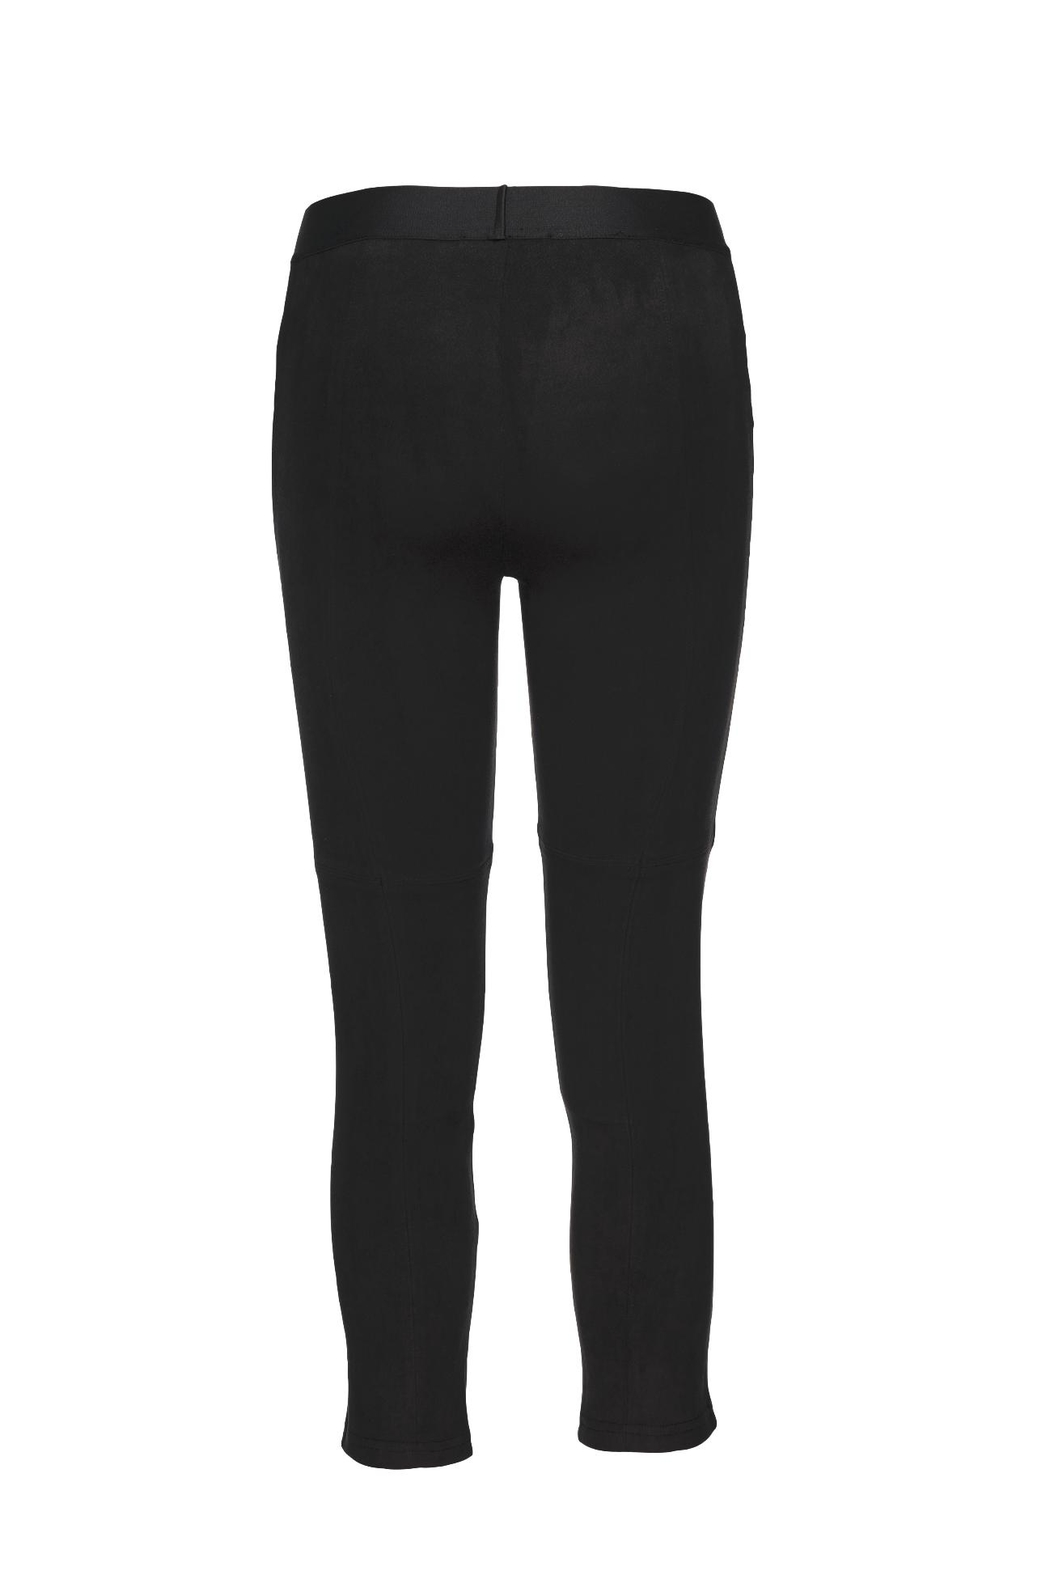 David Lerner New York Microsuede Seamed Legging - Front Full Image